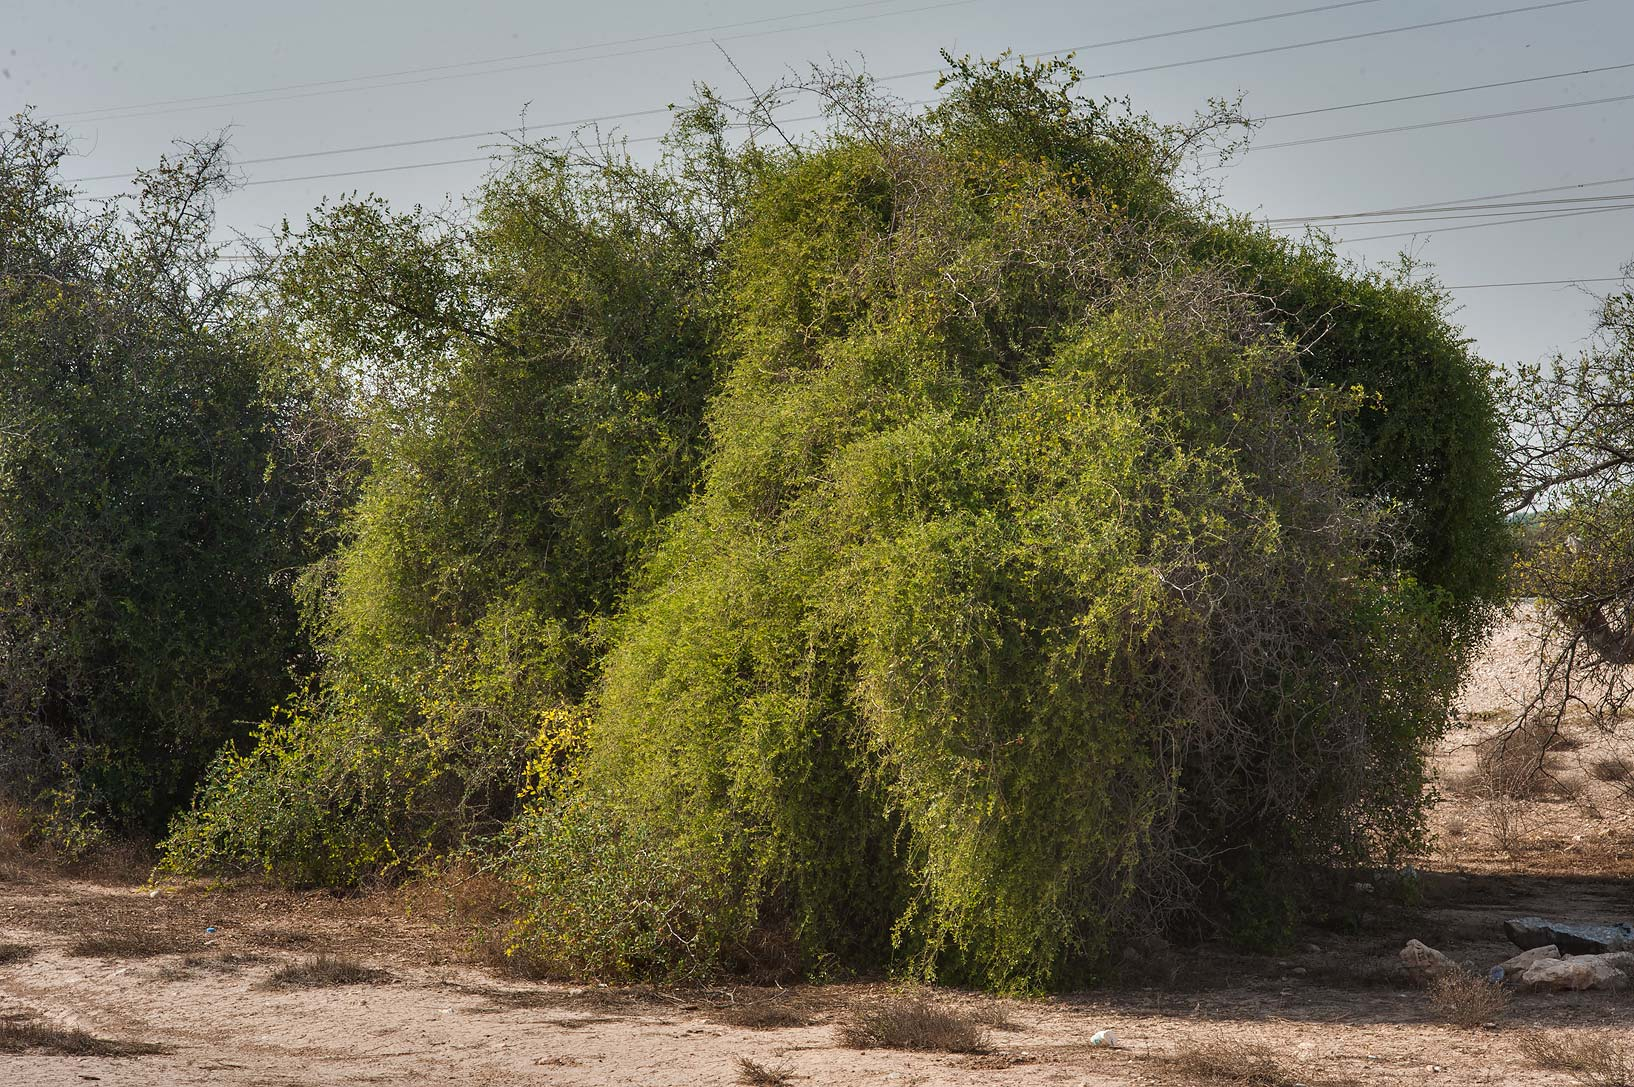 Vine of Cocculus pendulus in Rawdat Mahyoub on...Al Jumayliyah in north-western Qatar